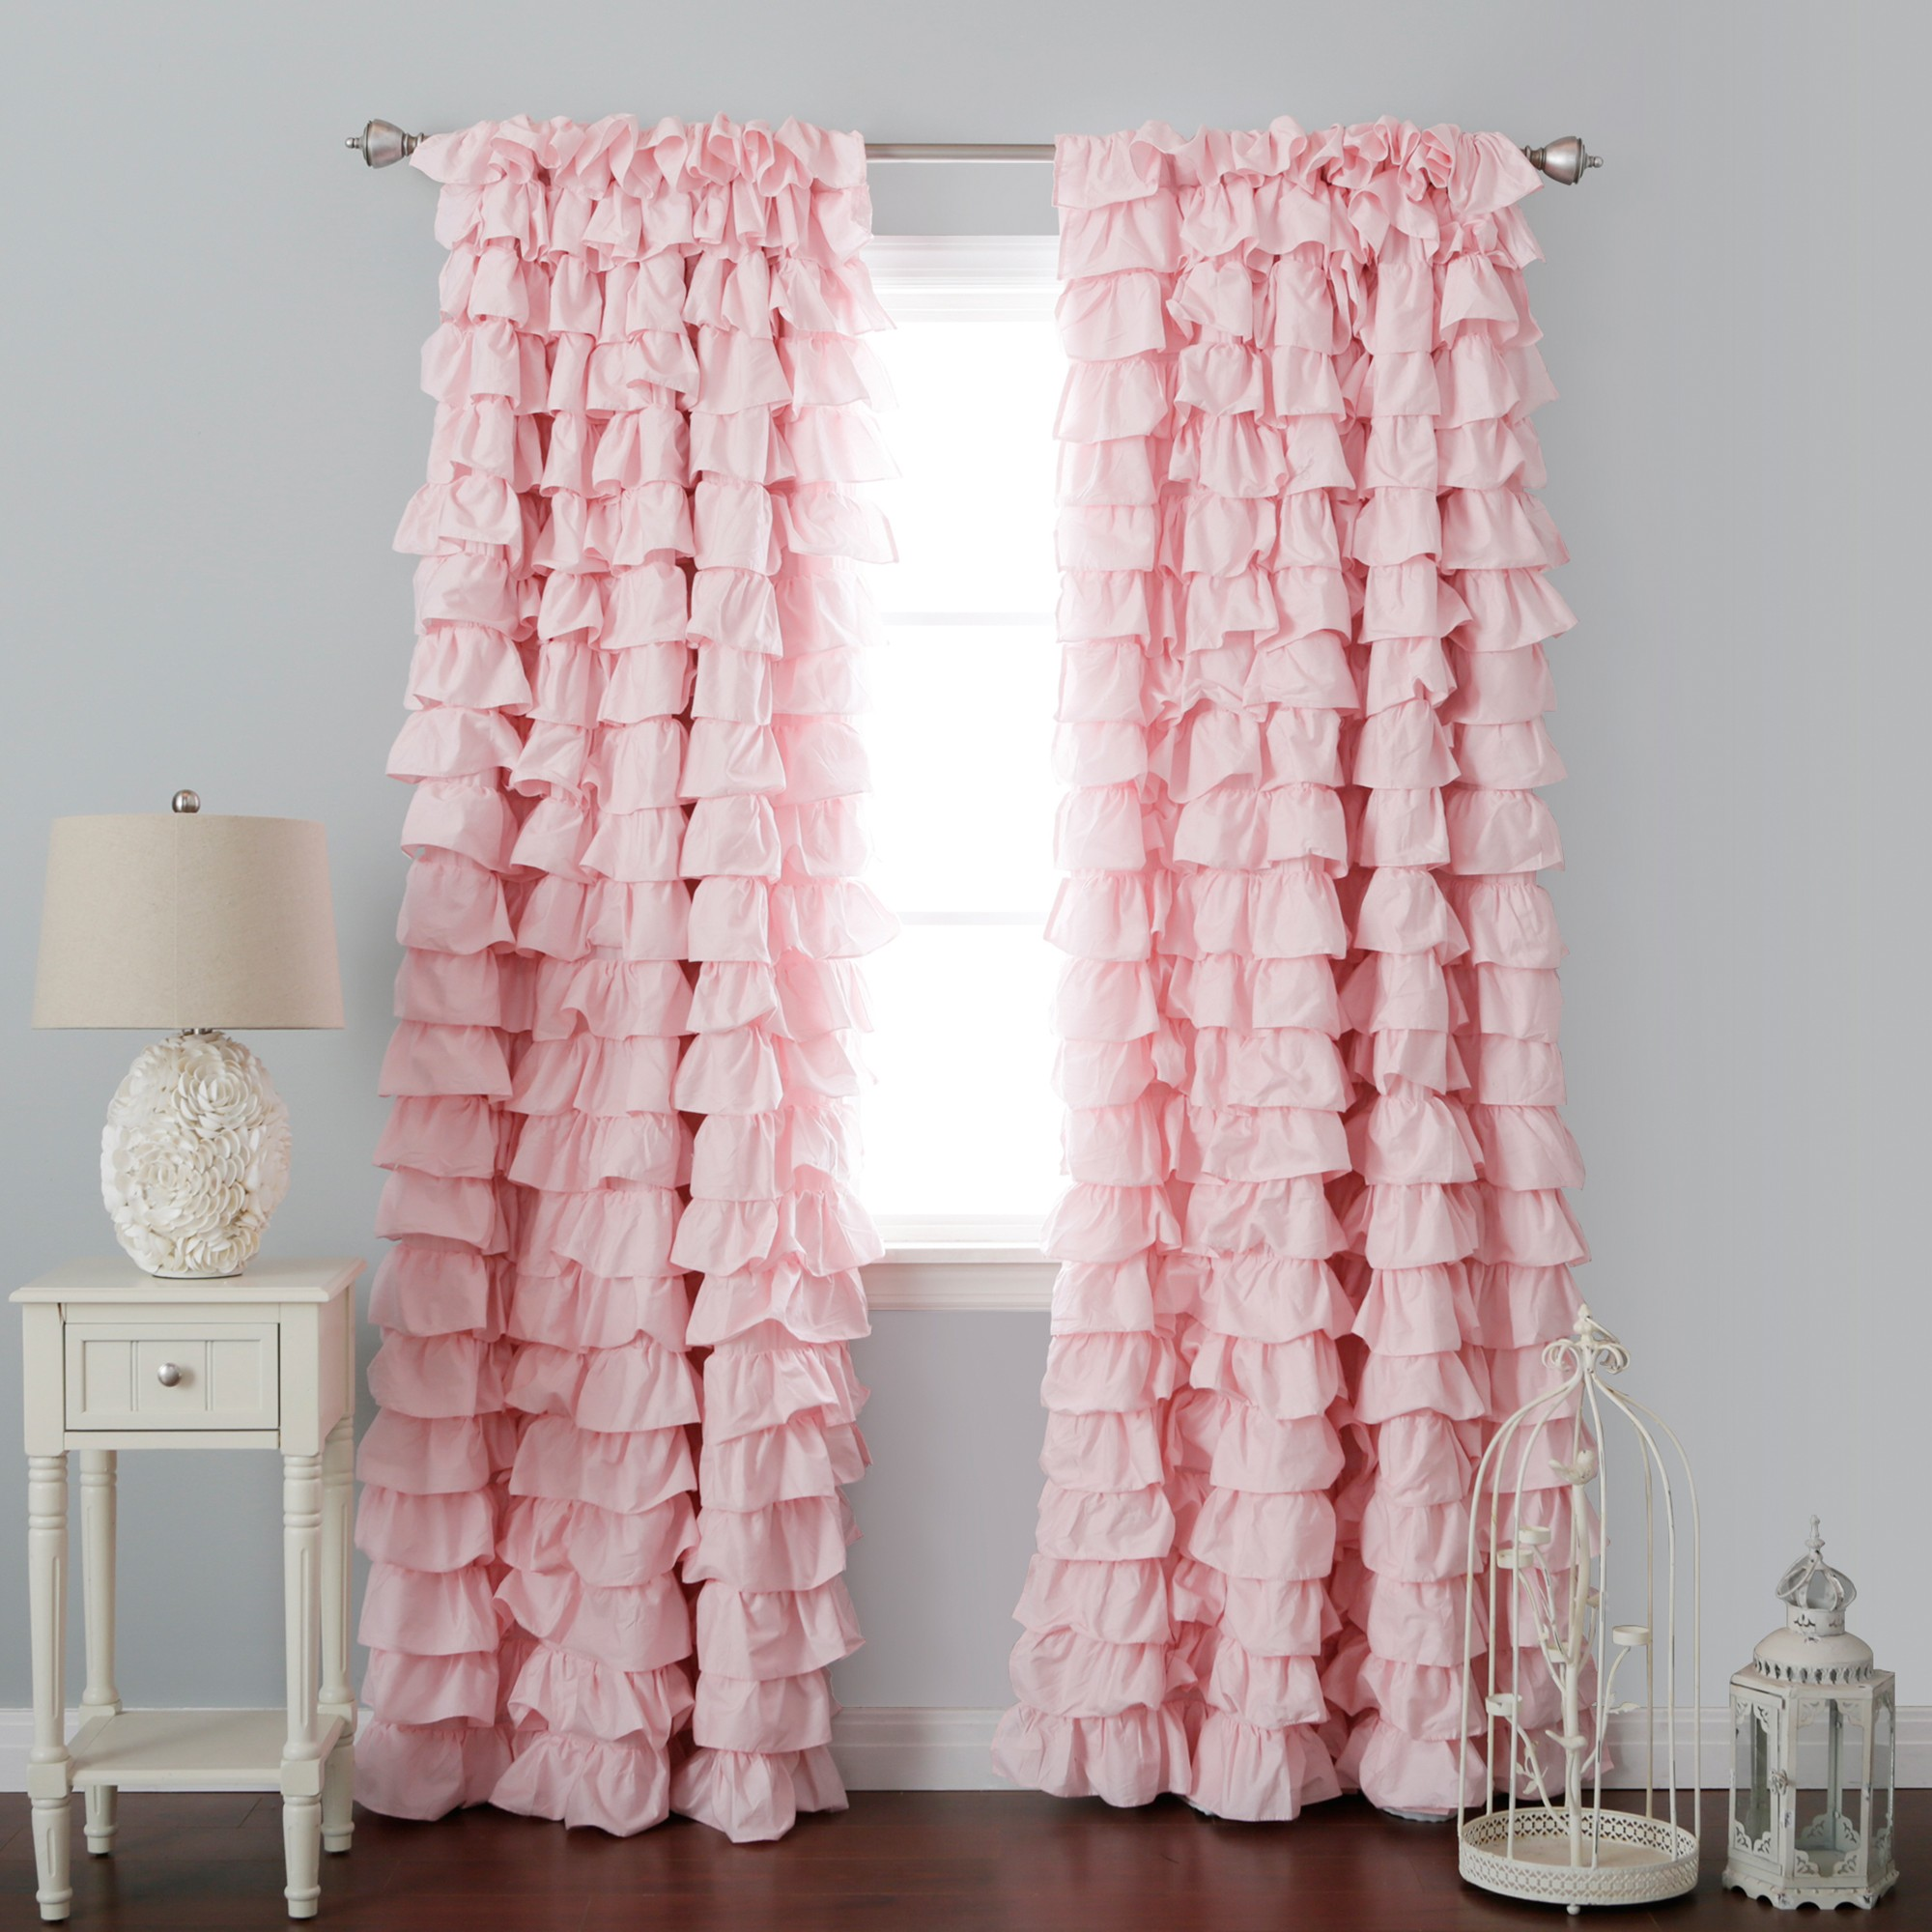 Blackout Curtains for Children | Polka Dot Curtain Panels | Ruffle Blackout Curtains